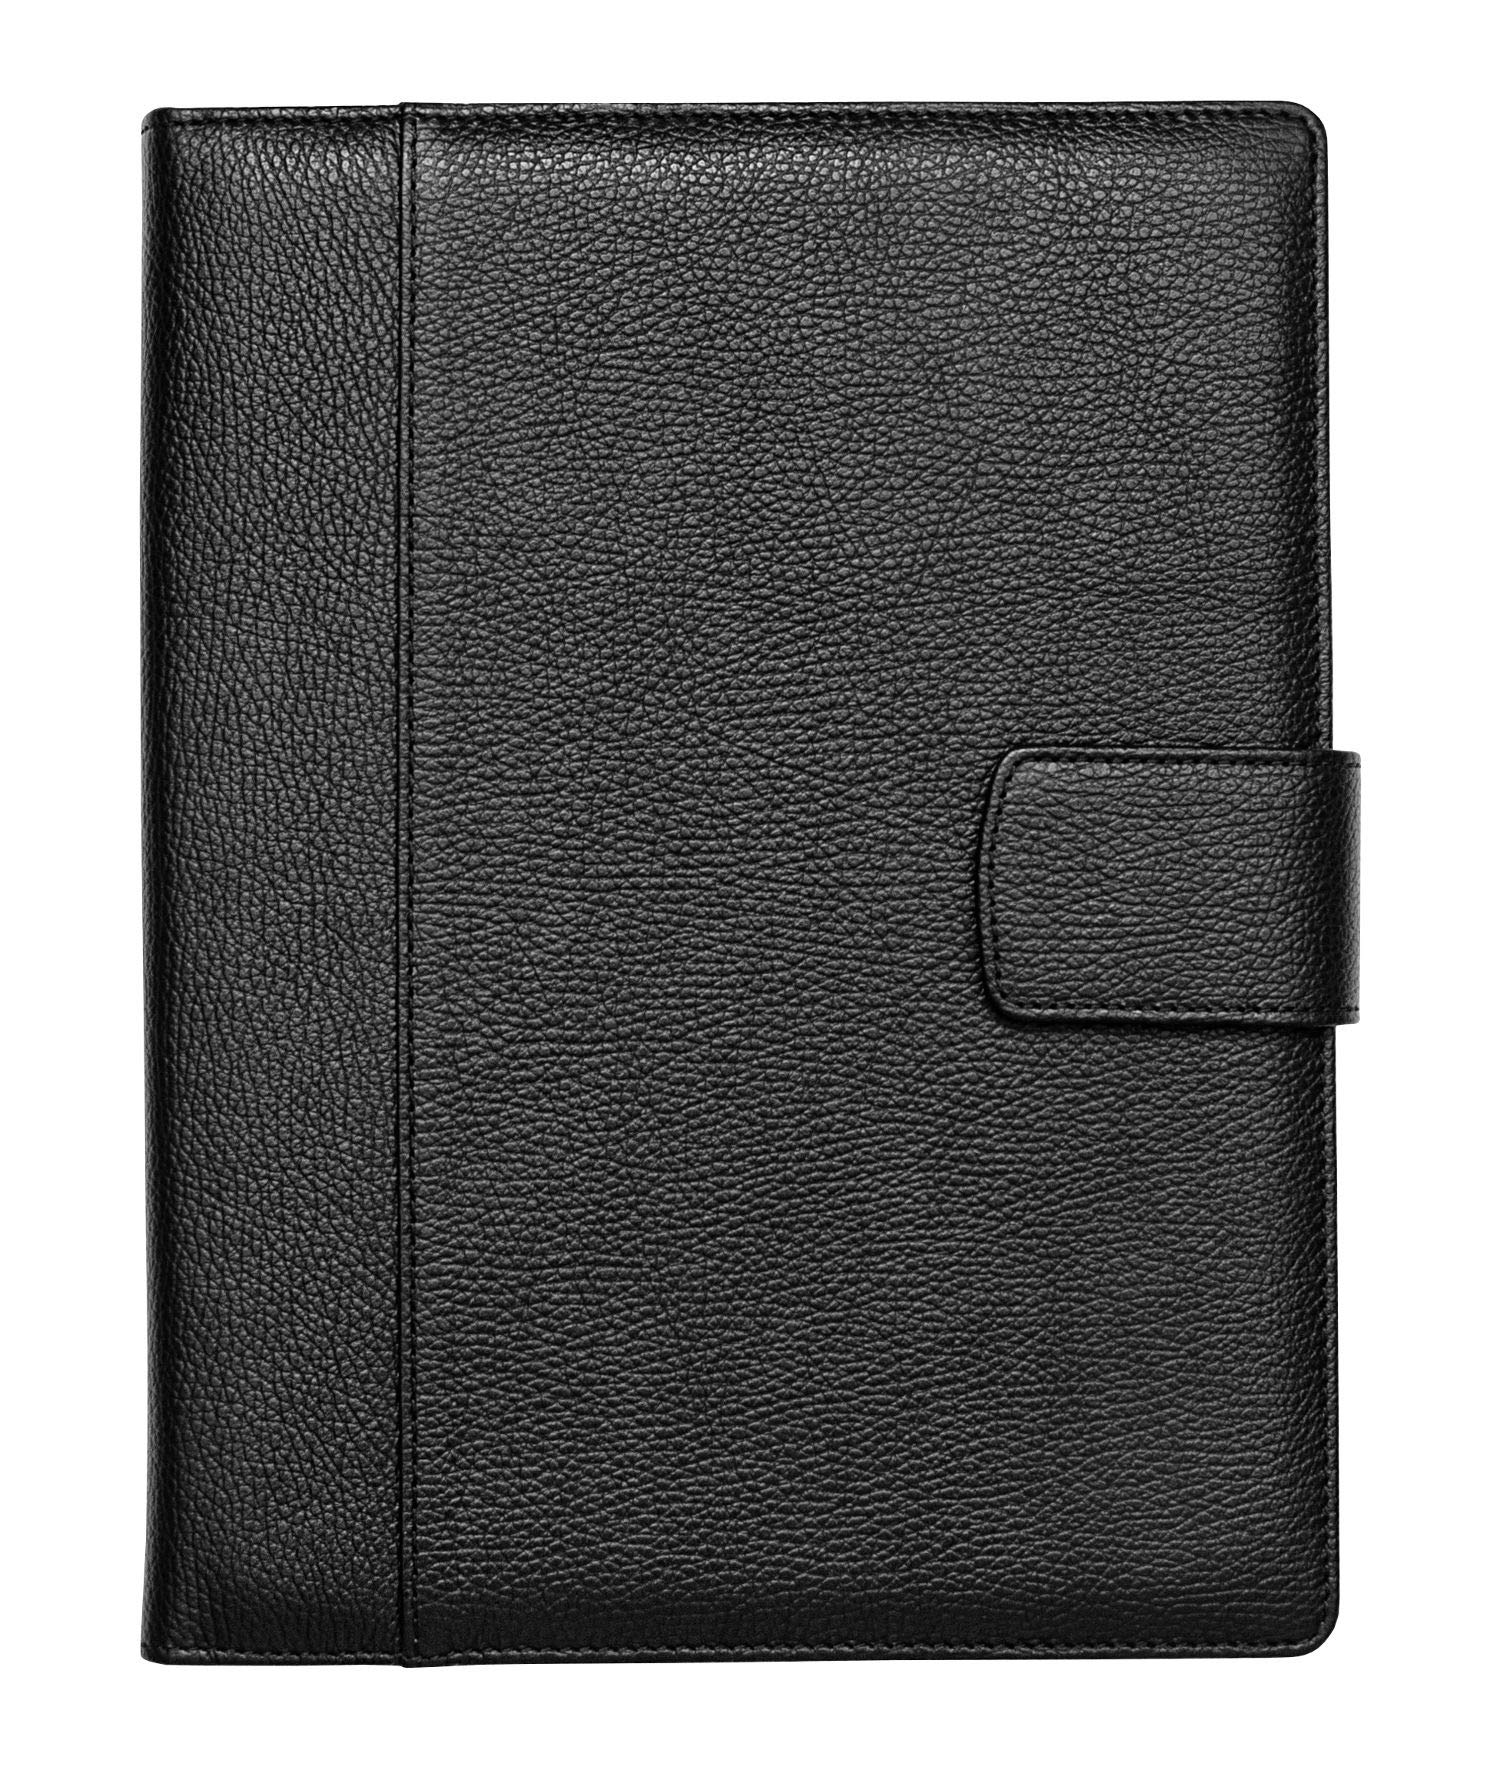 Maruse Italian Leather Padfolio Folder Organizer with Magnetic Closure and Writing Pad 8.5 x 11 - Made in Italy (Black) by Maruse